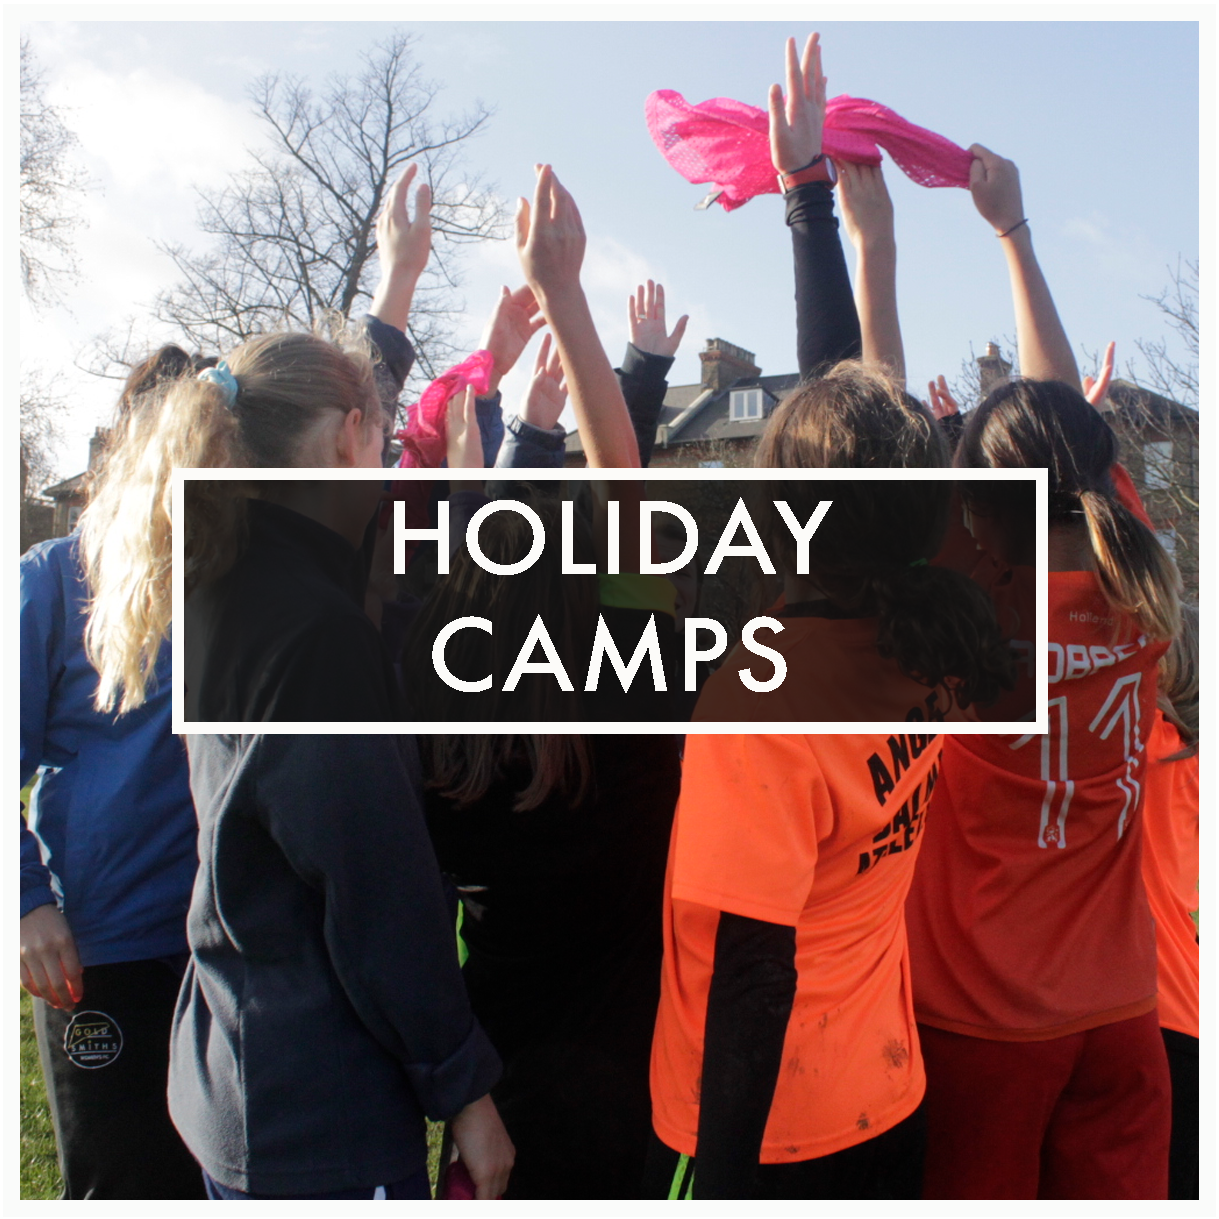 Holiday courses and camps every School Holiday @ Southwark or Hackney, London  Half day, full day or full course options available  Open to all abilities and experience levels